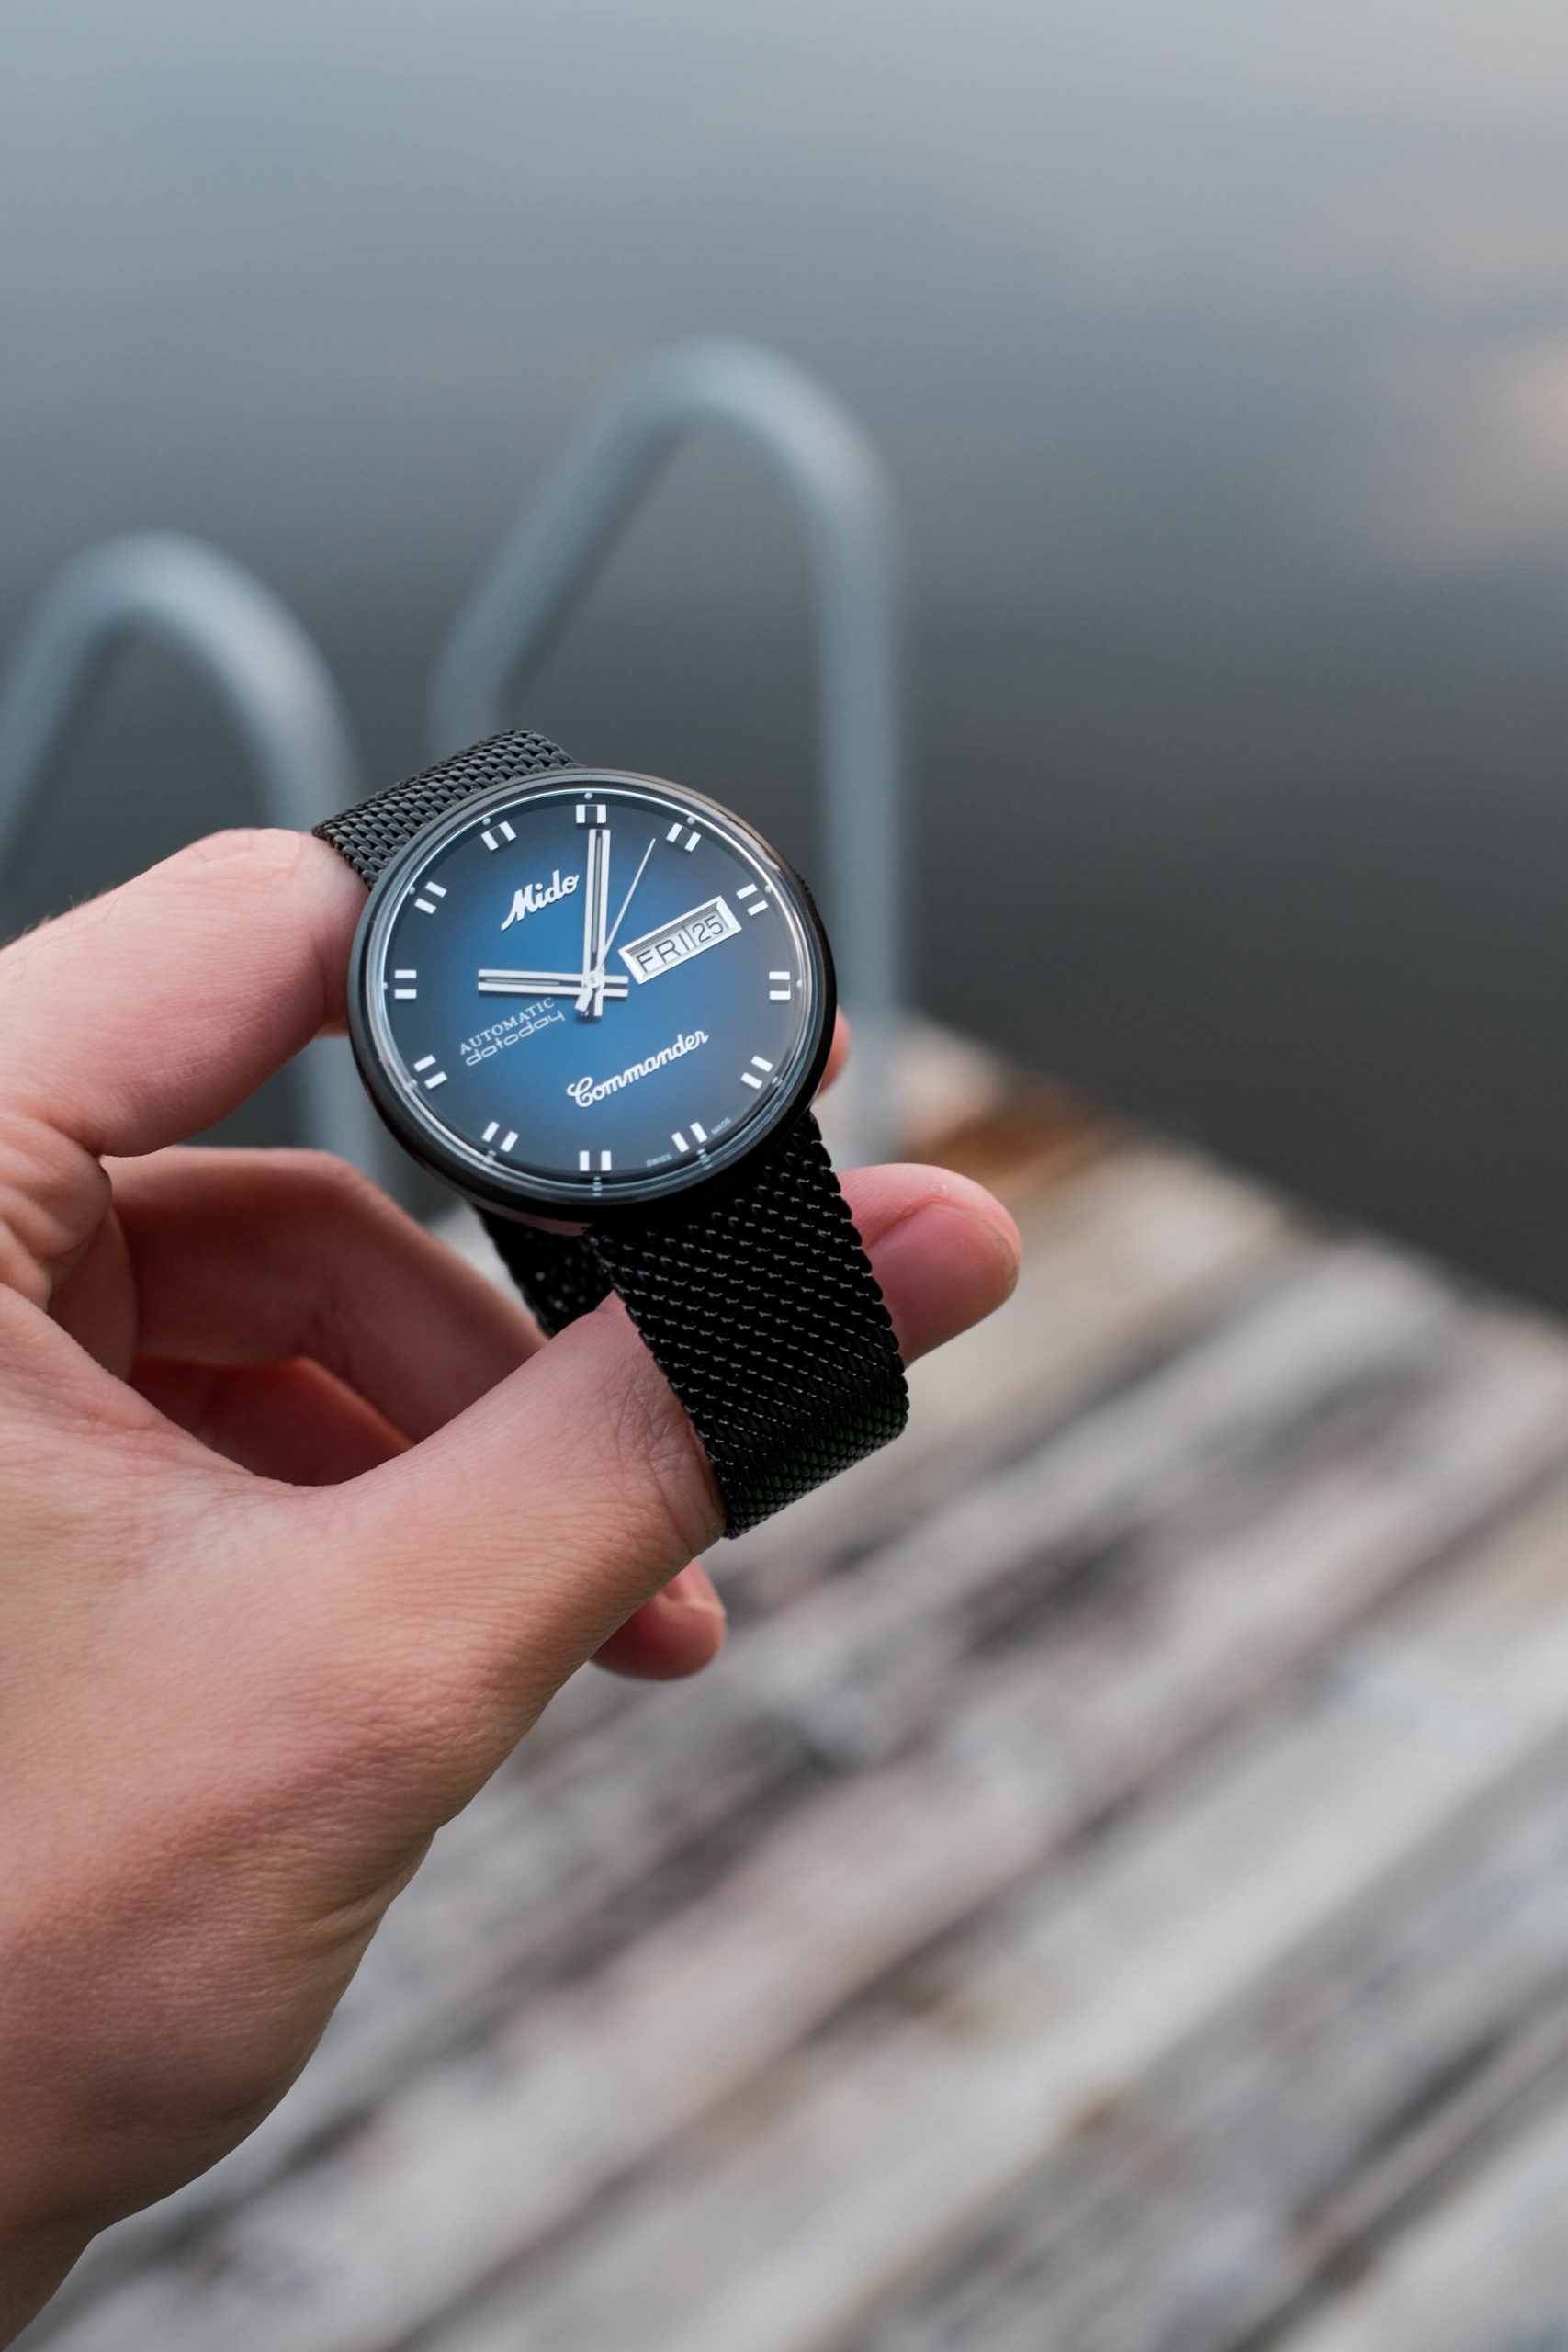 Mido-commander-shade-blue-dial-scaled.jpg